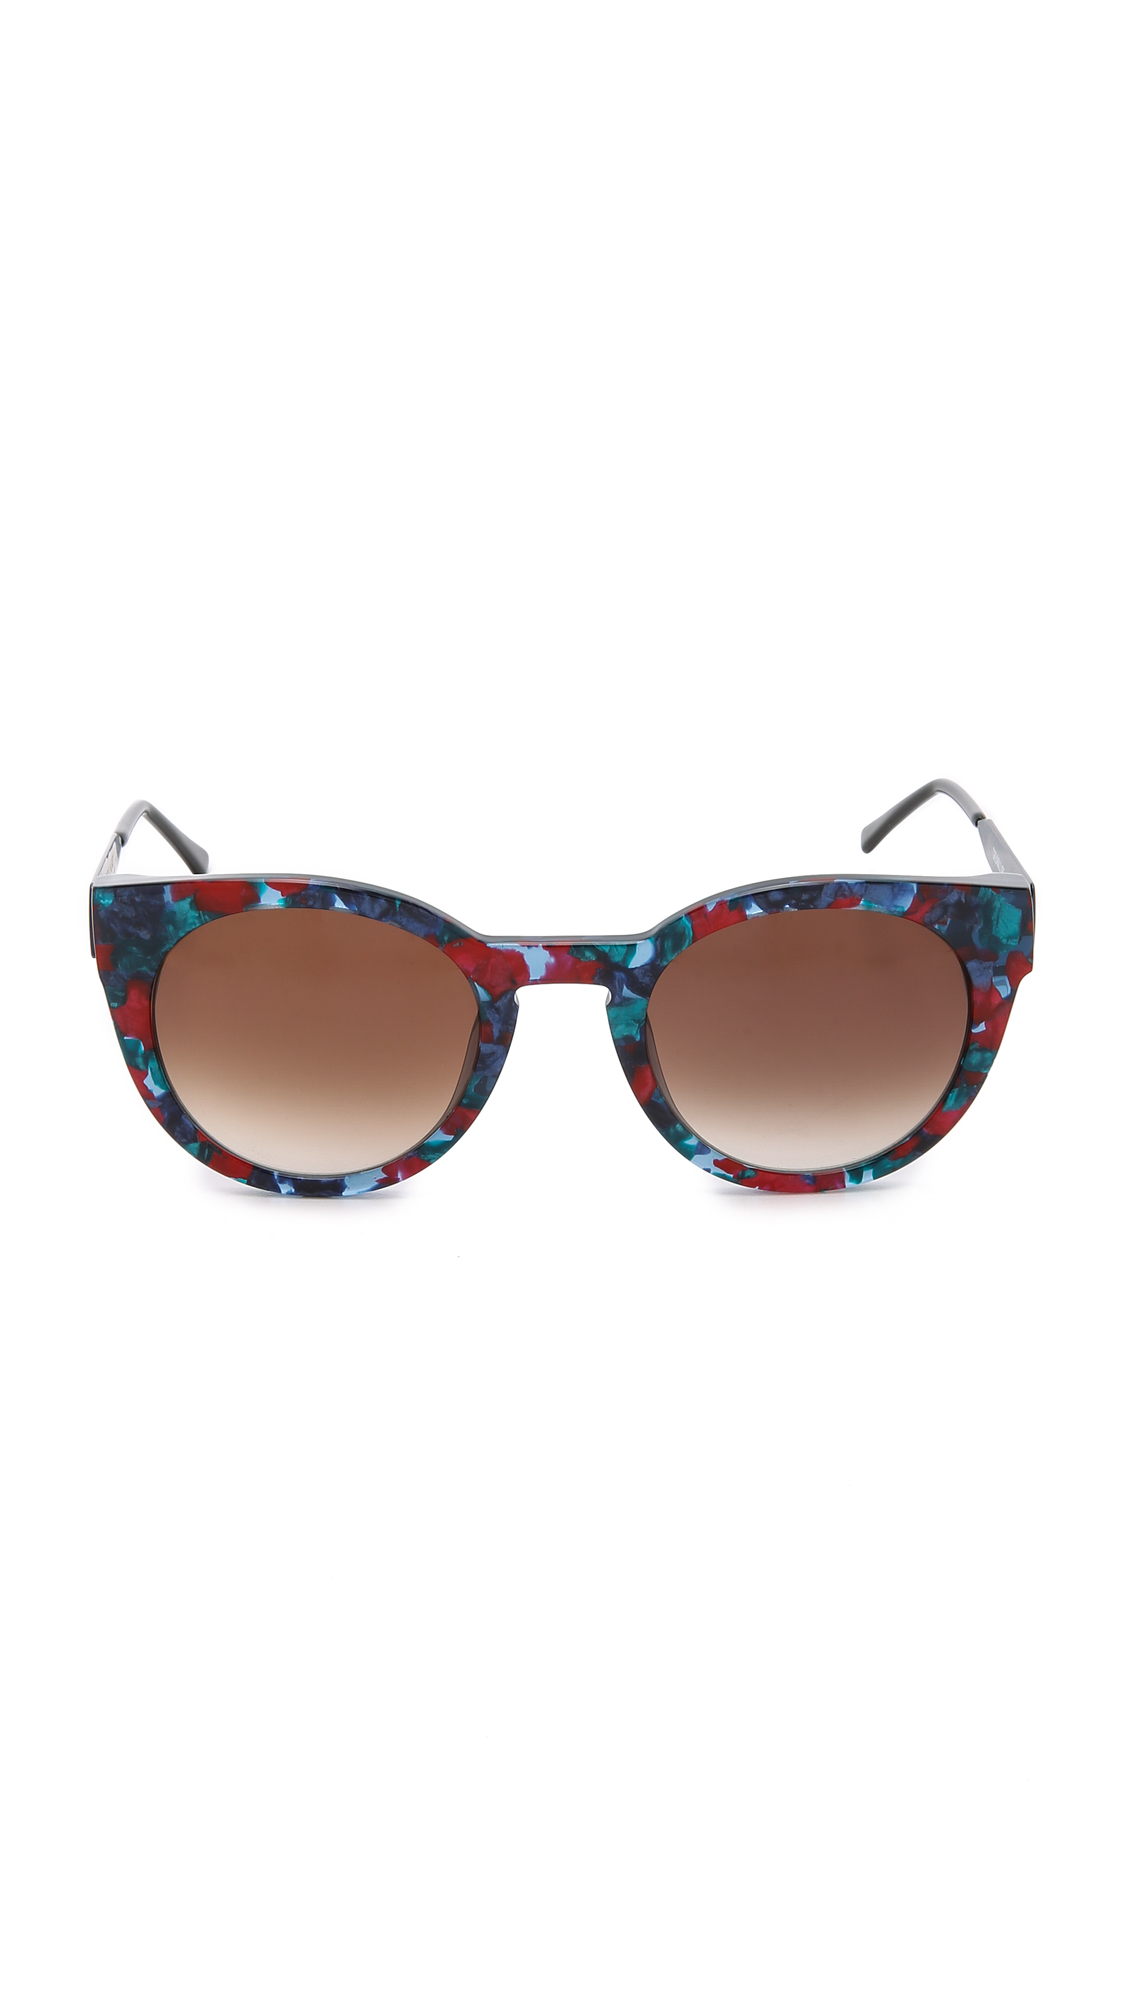 Thierry Lasry Creamily Sunglasses - Blue Red Green/brown